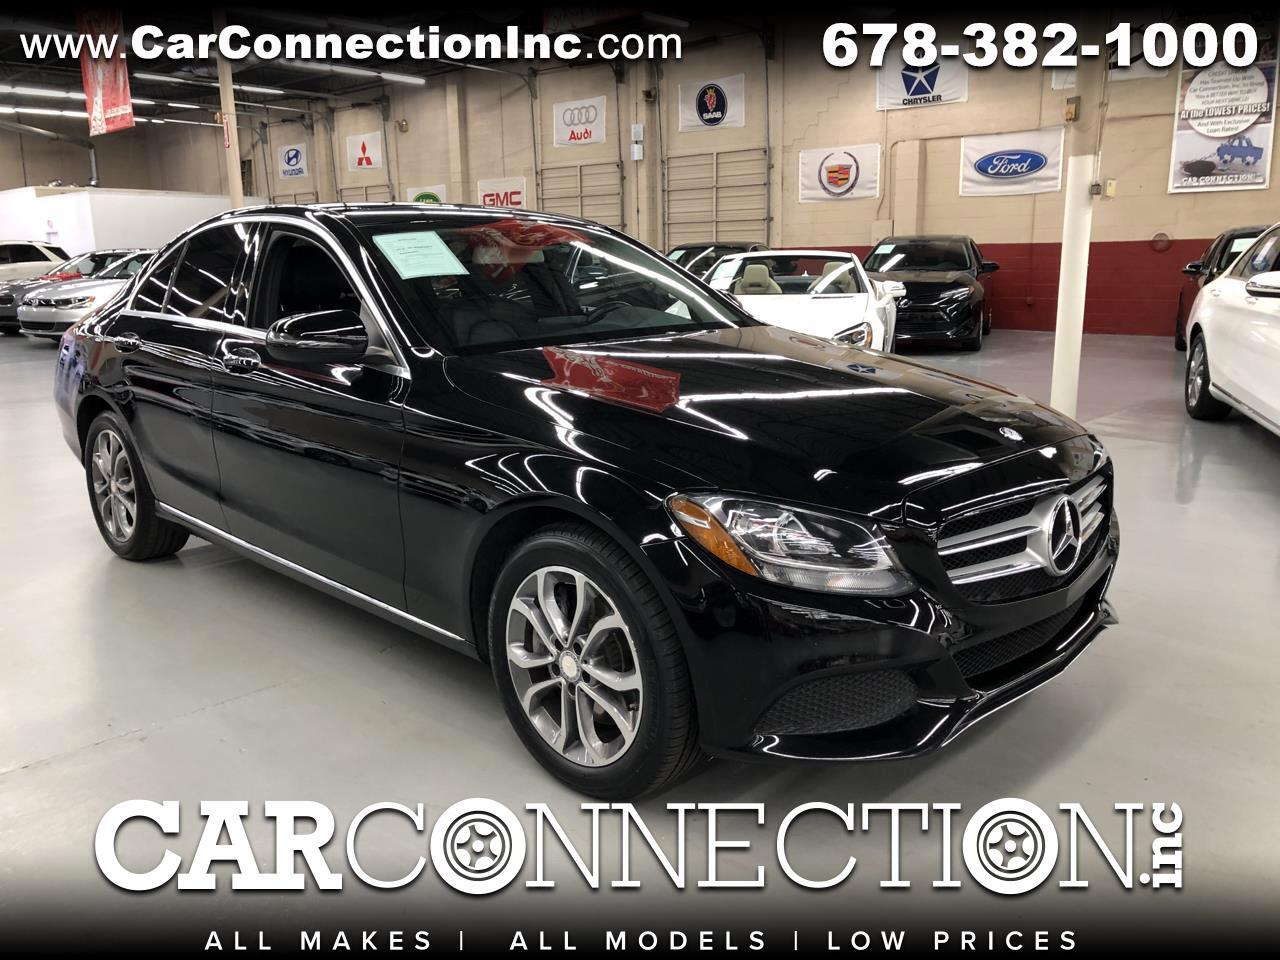 2016 Mercedes-Benz C-Class C300 4MATIC Luxury